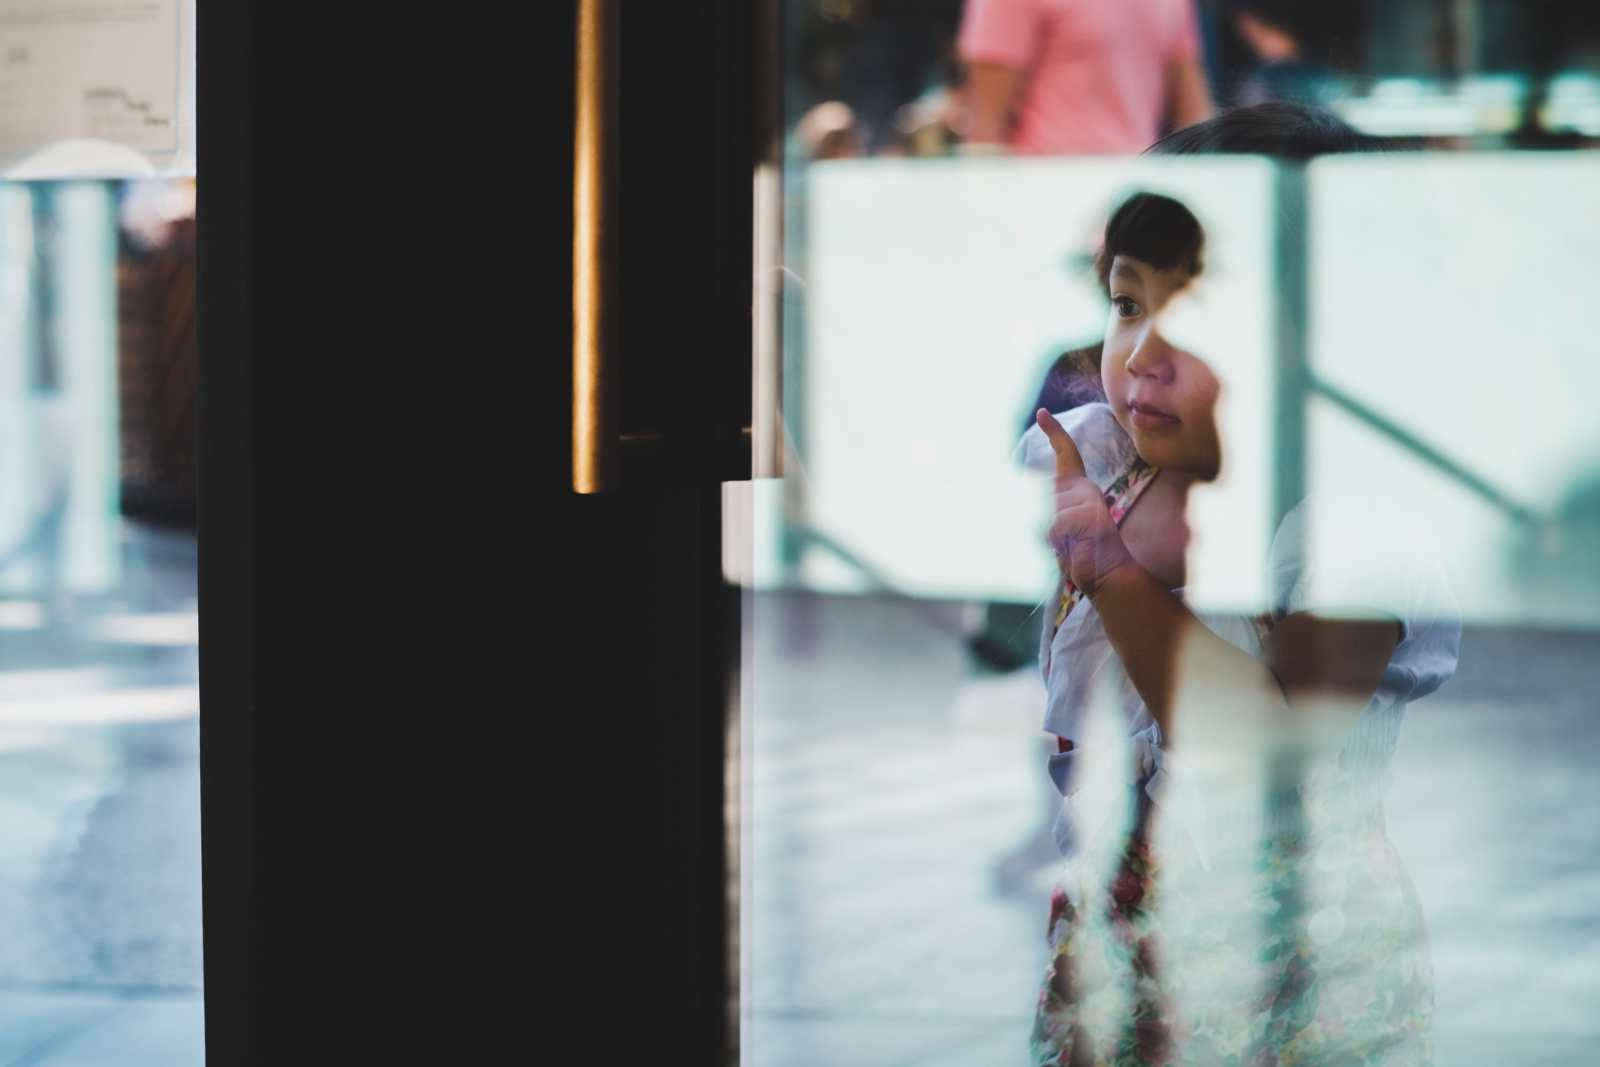 Toddler Reflections | Kamlan 50mm f1.1 Sample Photo